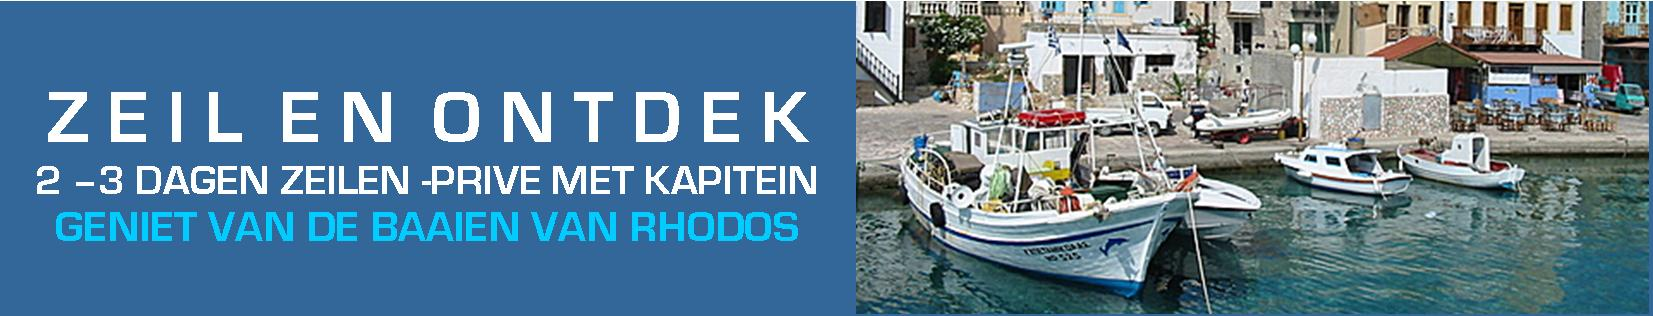 Zeil en ontdek Rhodos met je vrienden| Sail in Greece | sail-in-greece.net